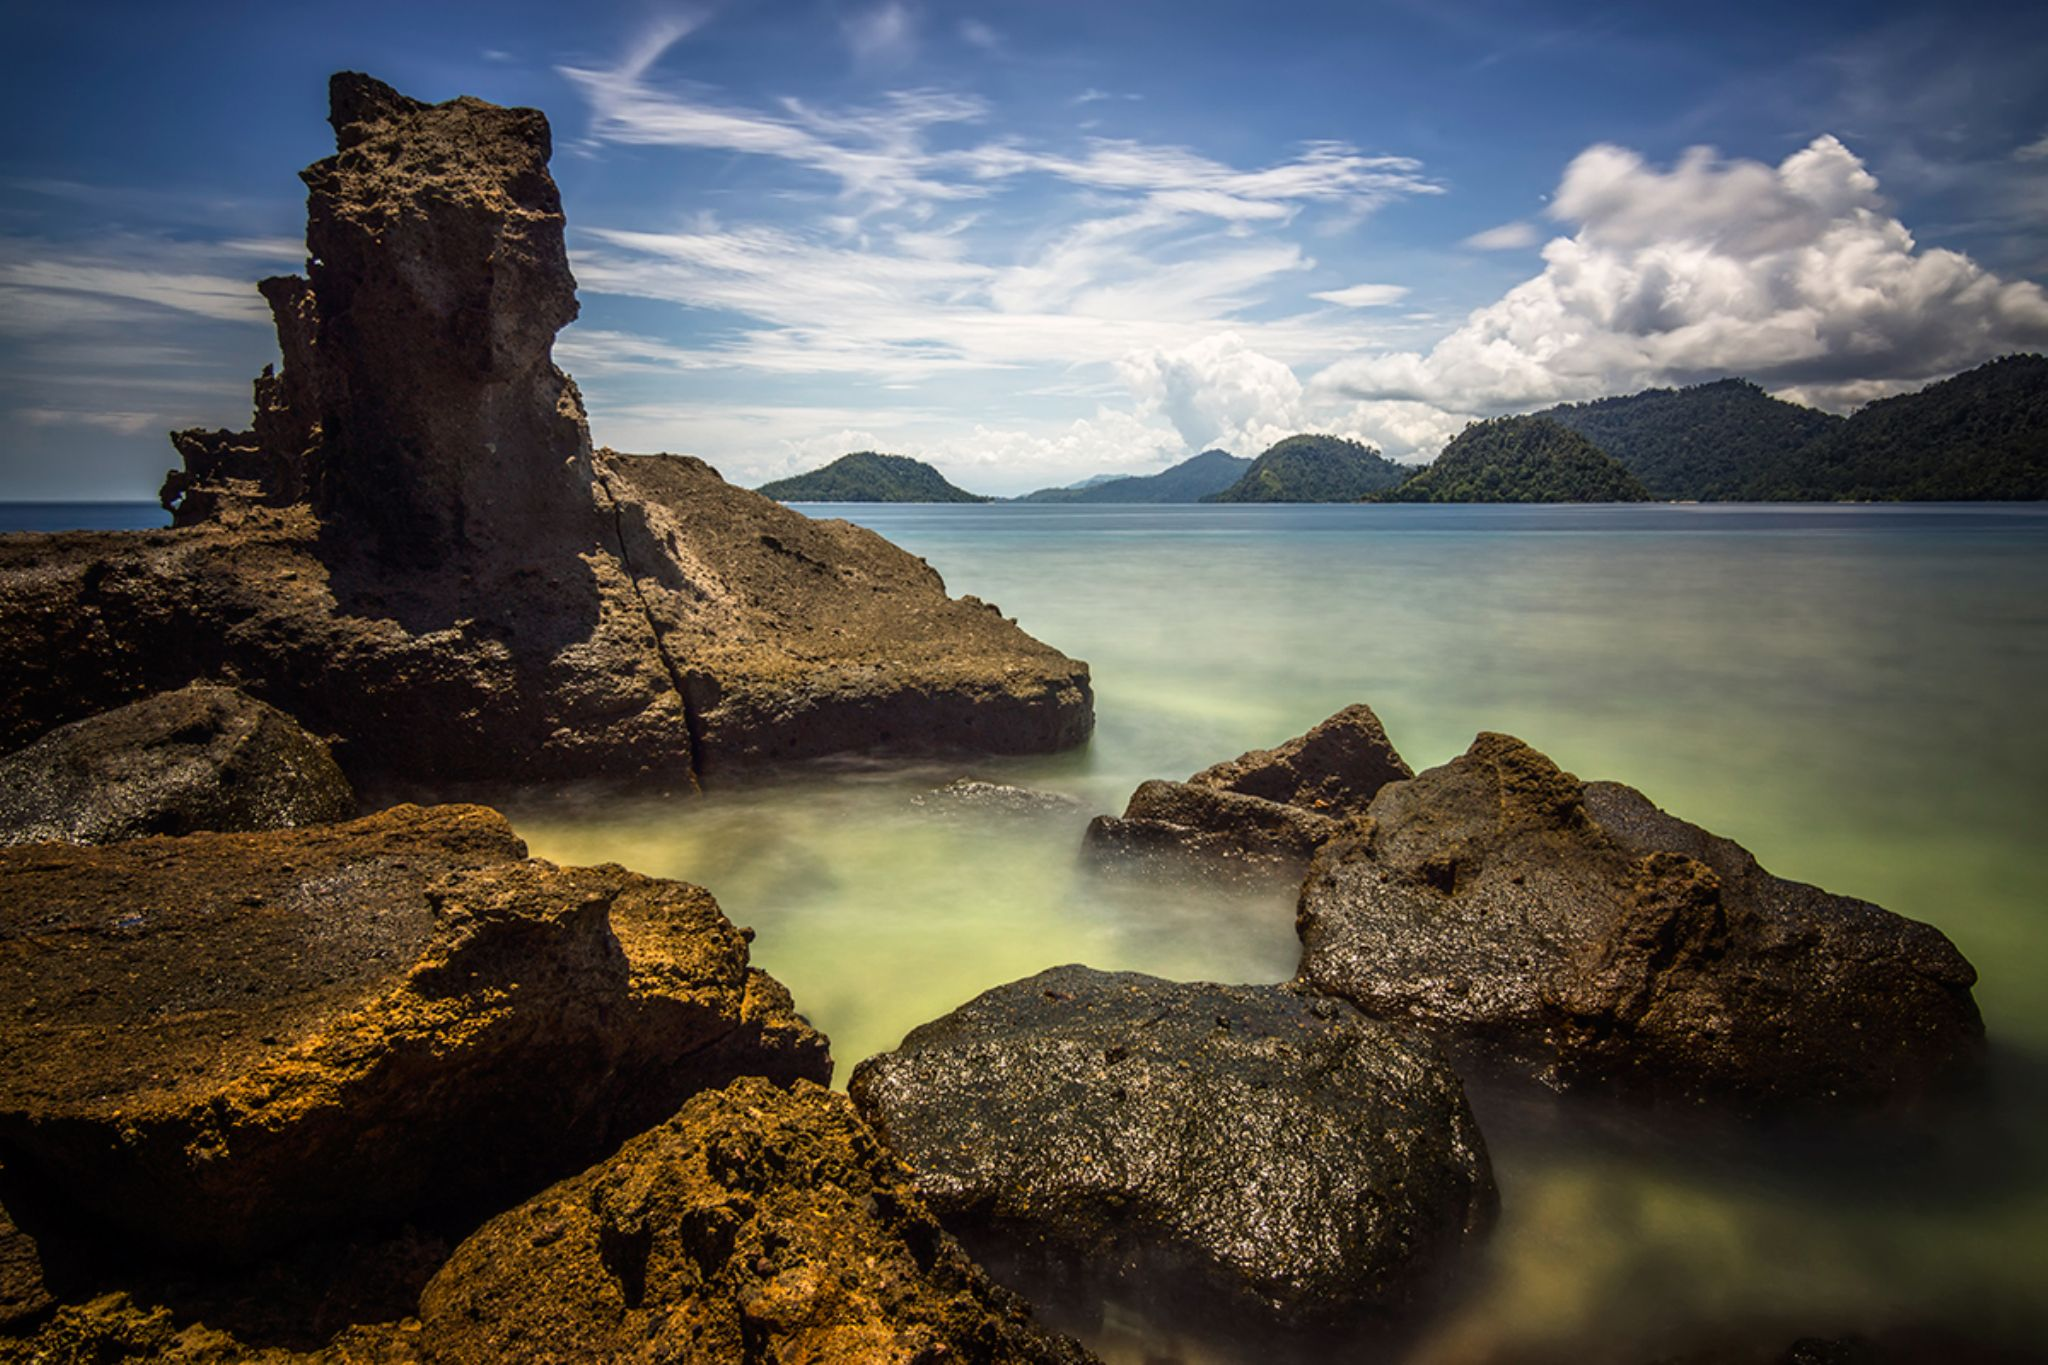 Rocks Formation of Pagang Island by AdeNoverzan